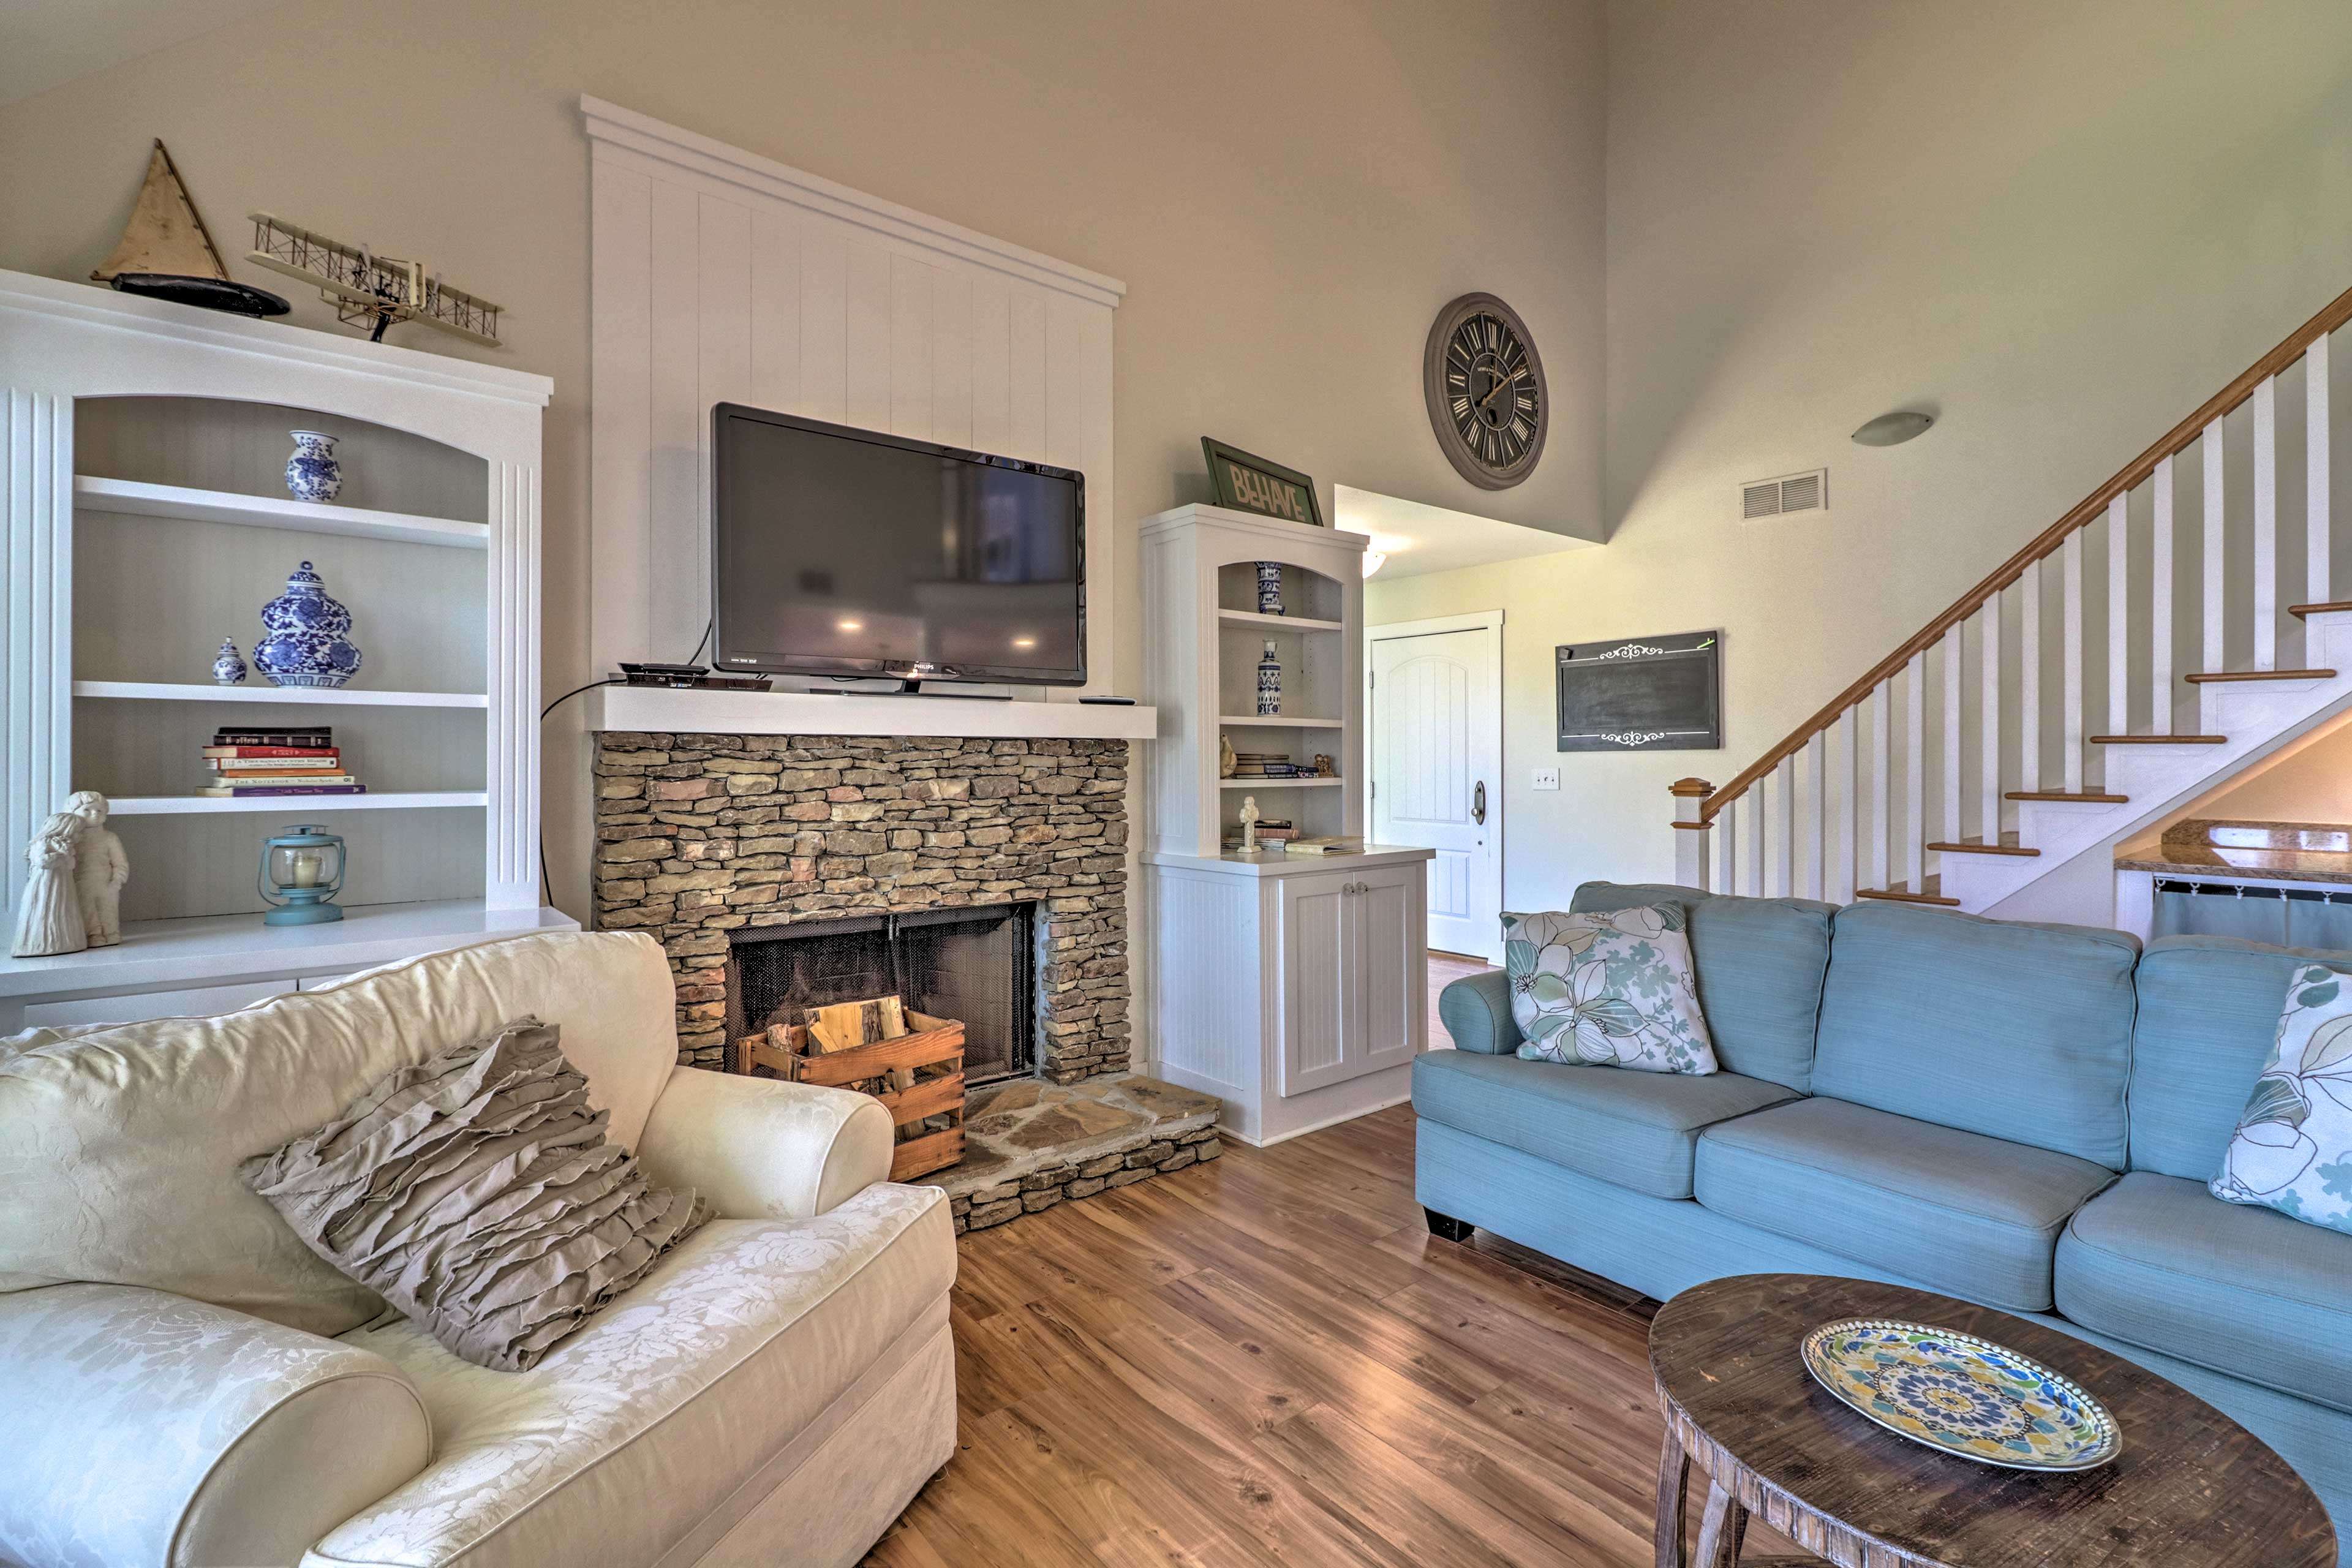 Visiting during the winter? Take advantage of the wood-burning fireplace!